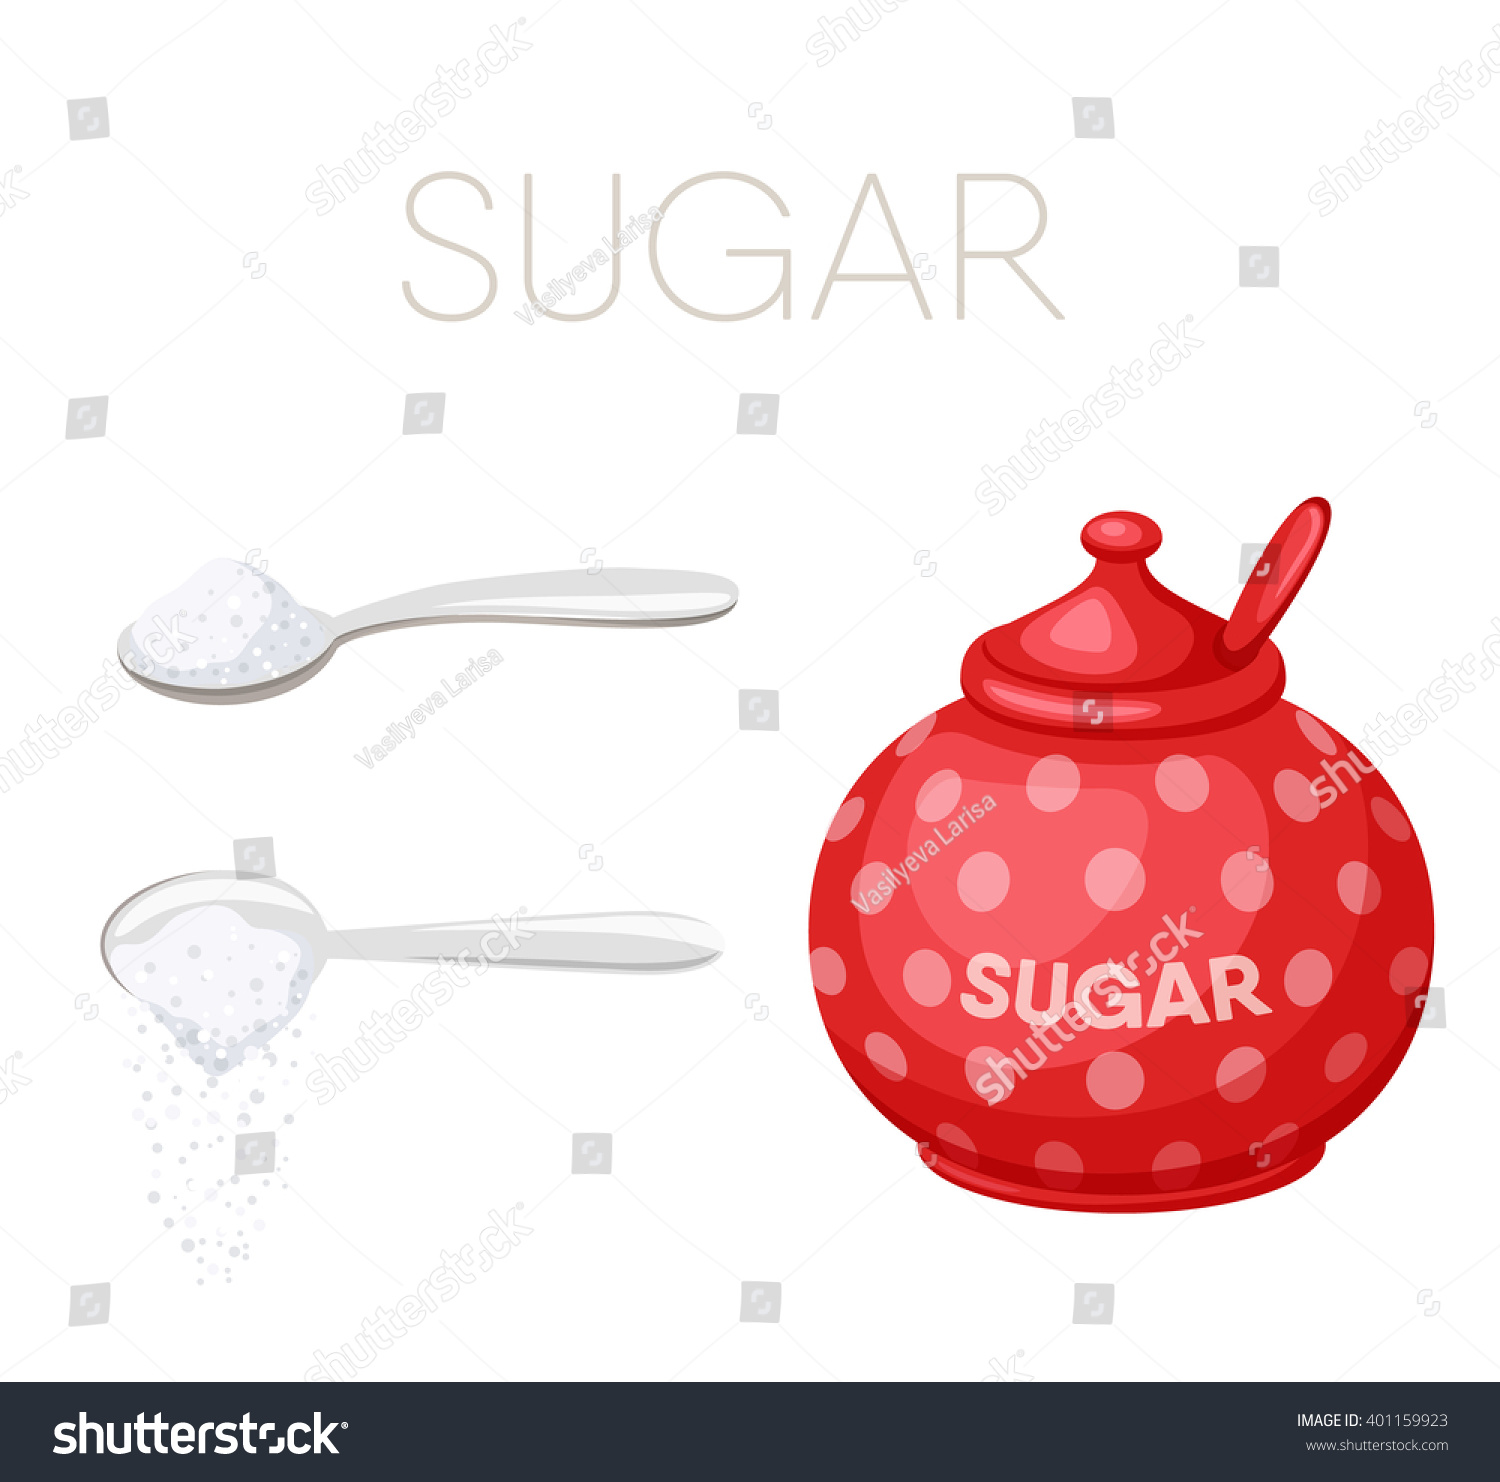 Sugar Bowl And Spoon. Baking And Cooking Ingredients. Pour. Cartoon Vector.  Drink